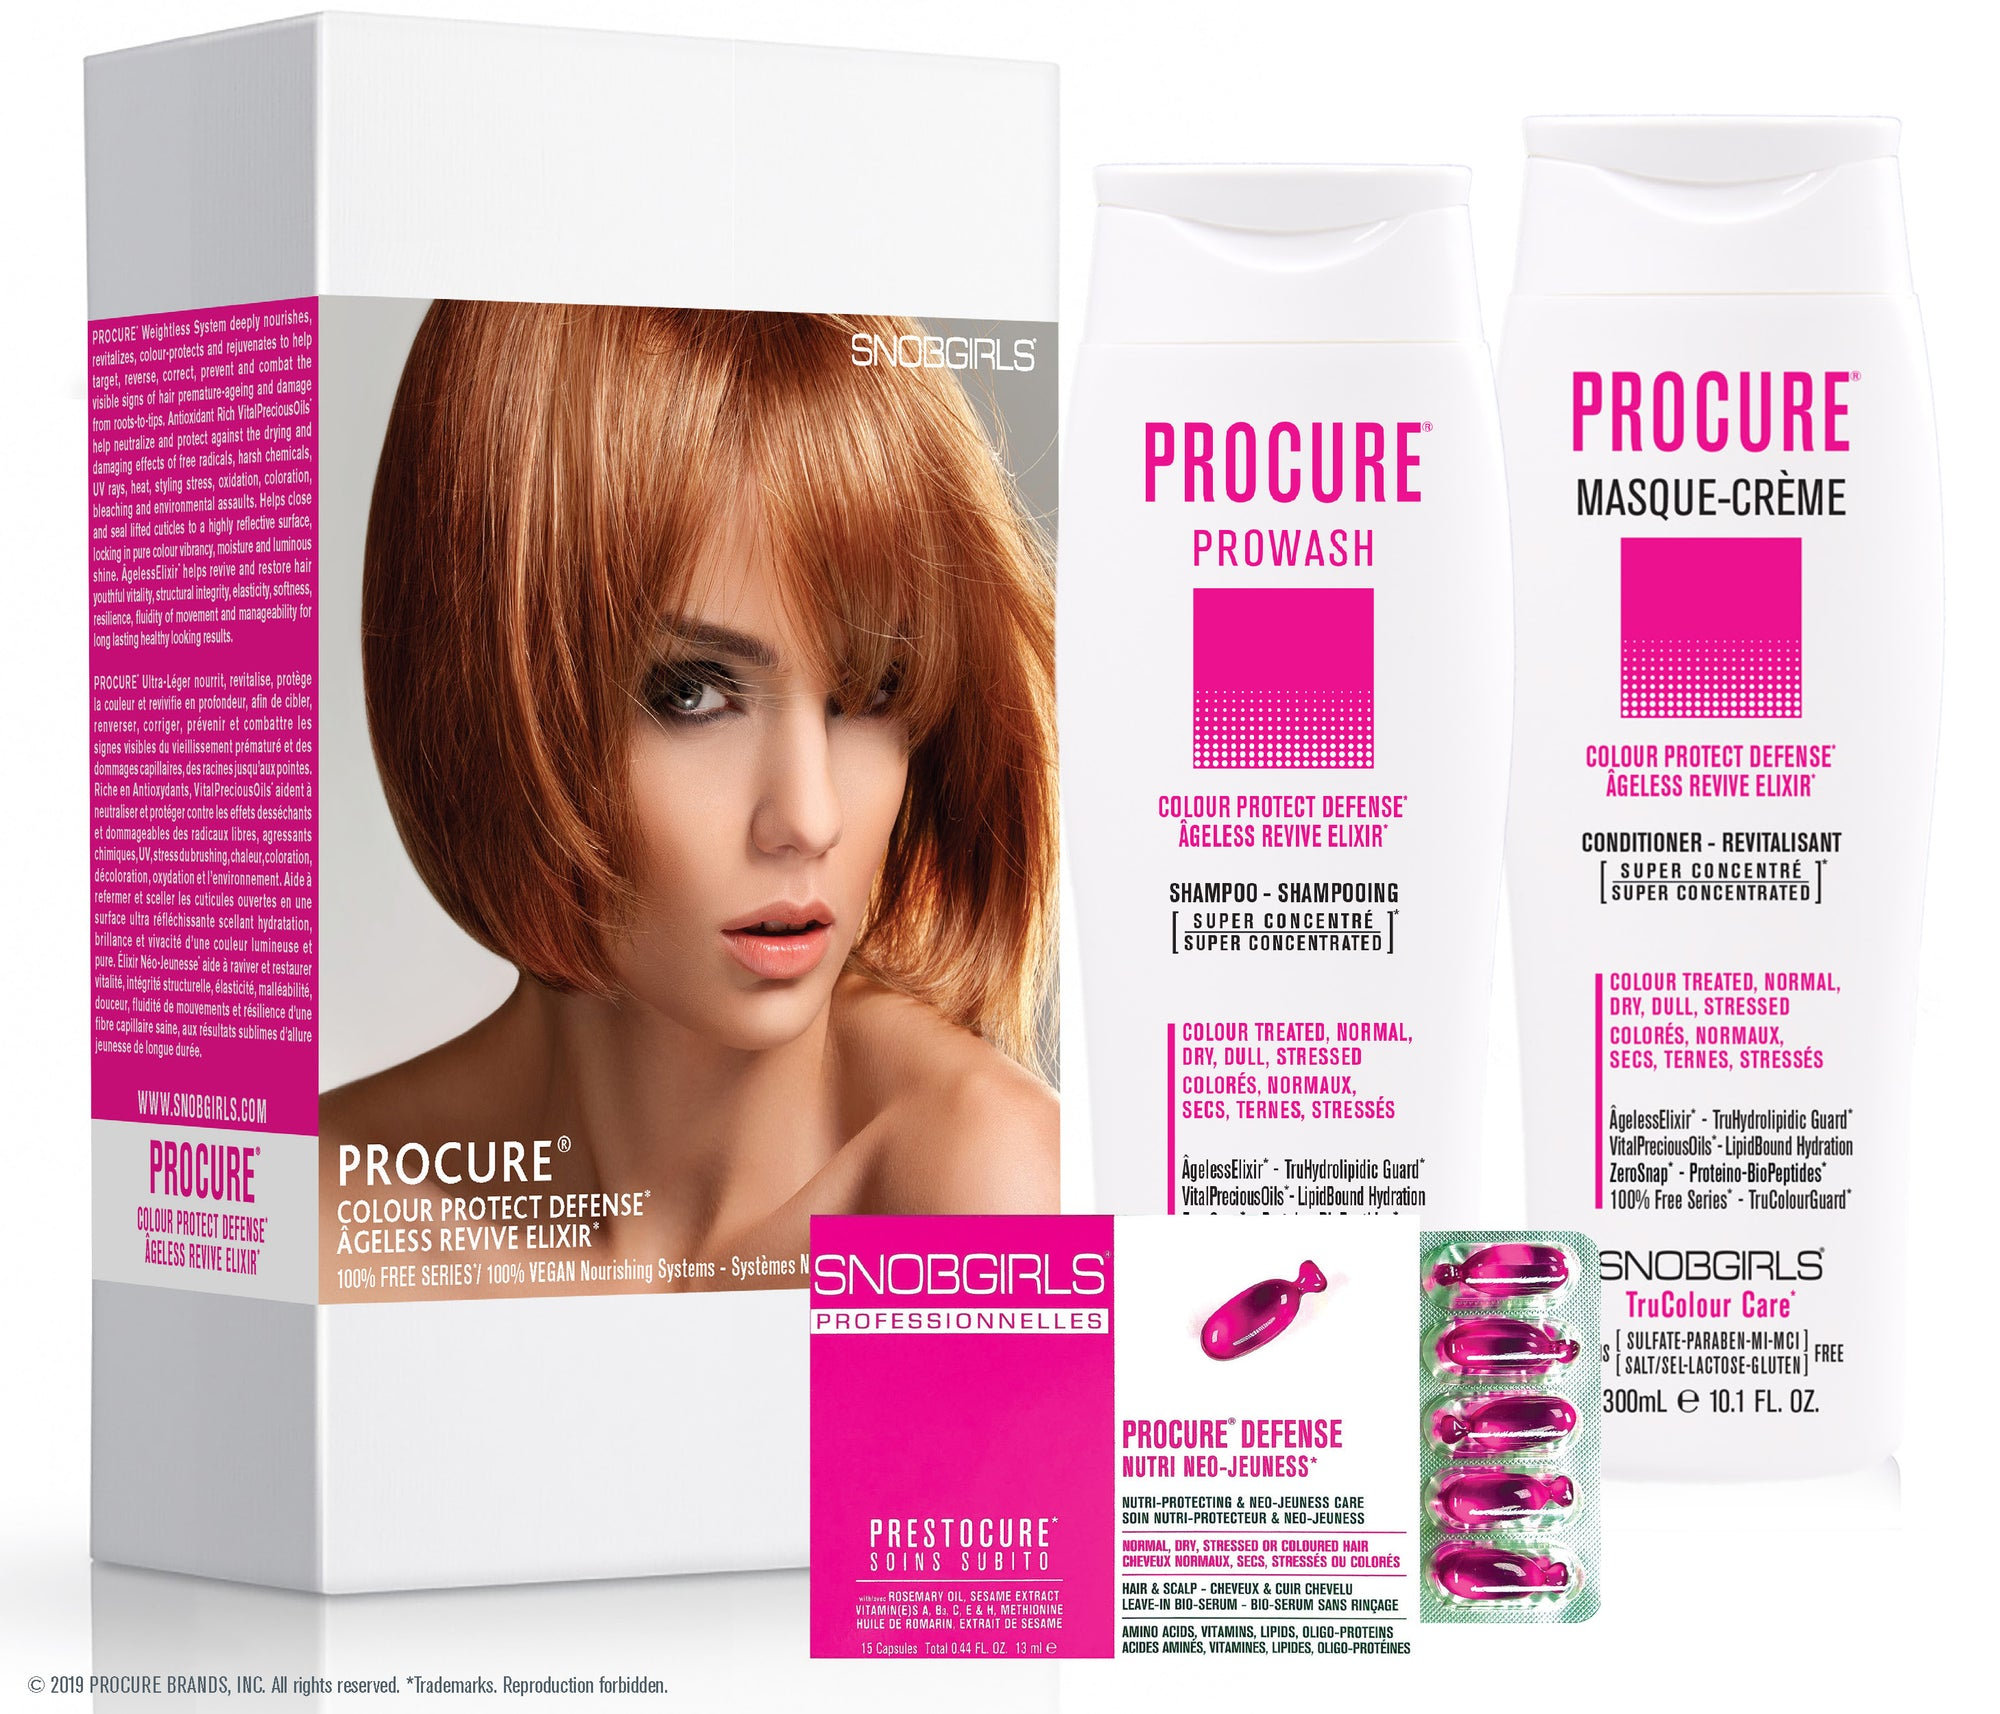 TRIO PROCURE COLOUR PROTECT DEFENSE - Ama - SNOBGIRLS.com